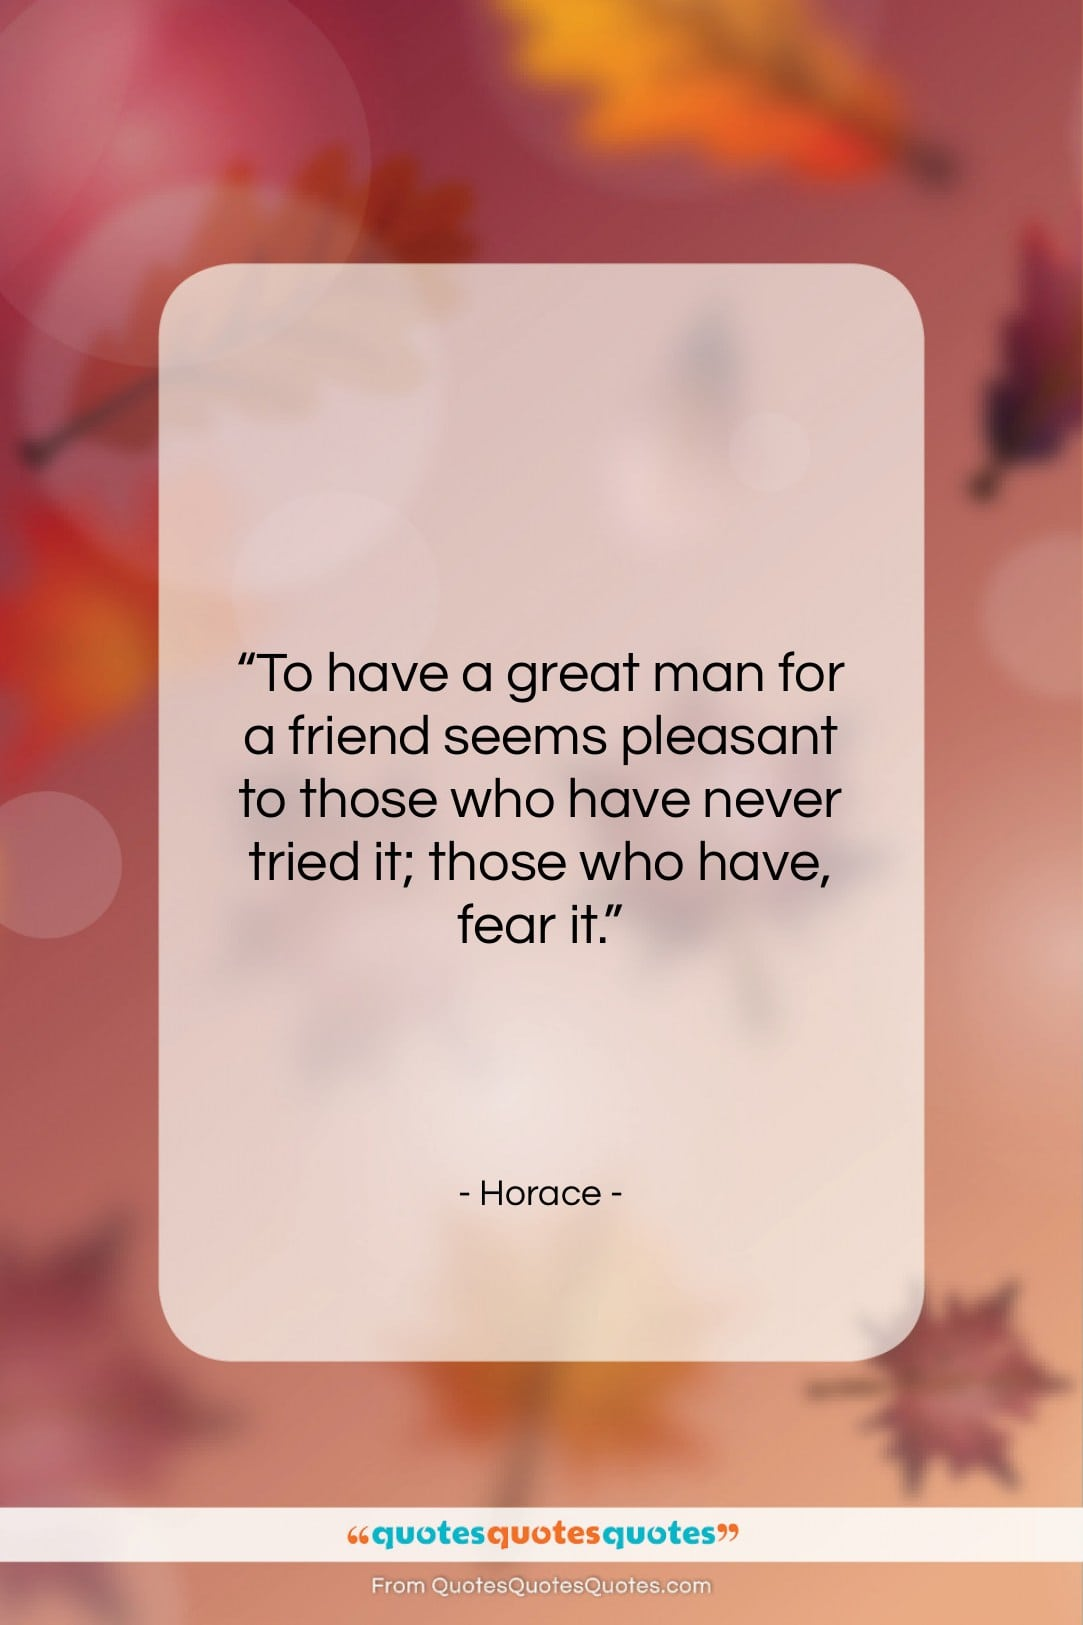 Get The Whole Horace Quote To Have A Great Man For A At Quotes